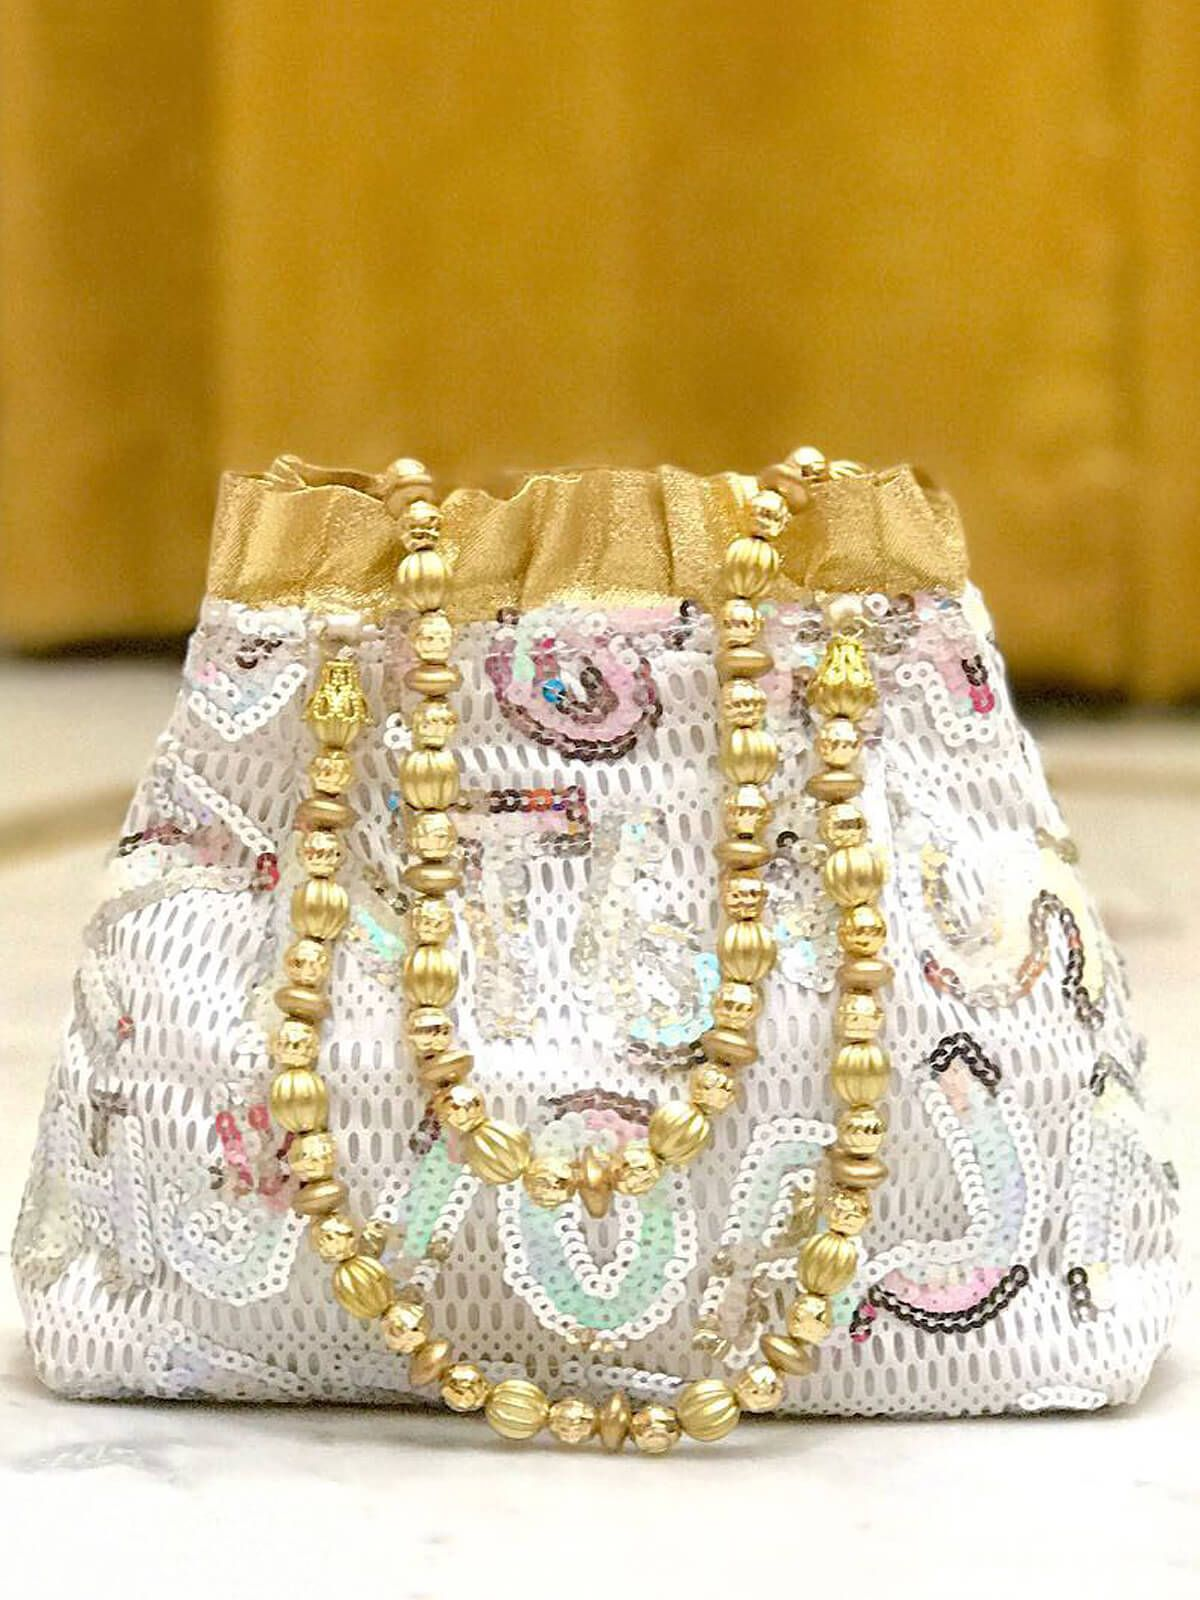 a9f027dcb34 Distinguished white and golden festival wear lace potli bag. Having  material lace. Featured with